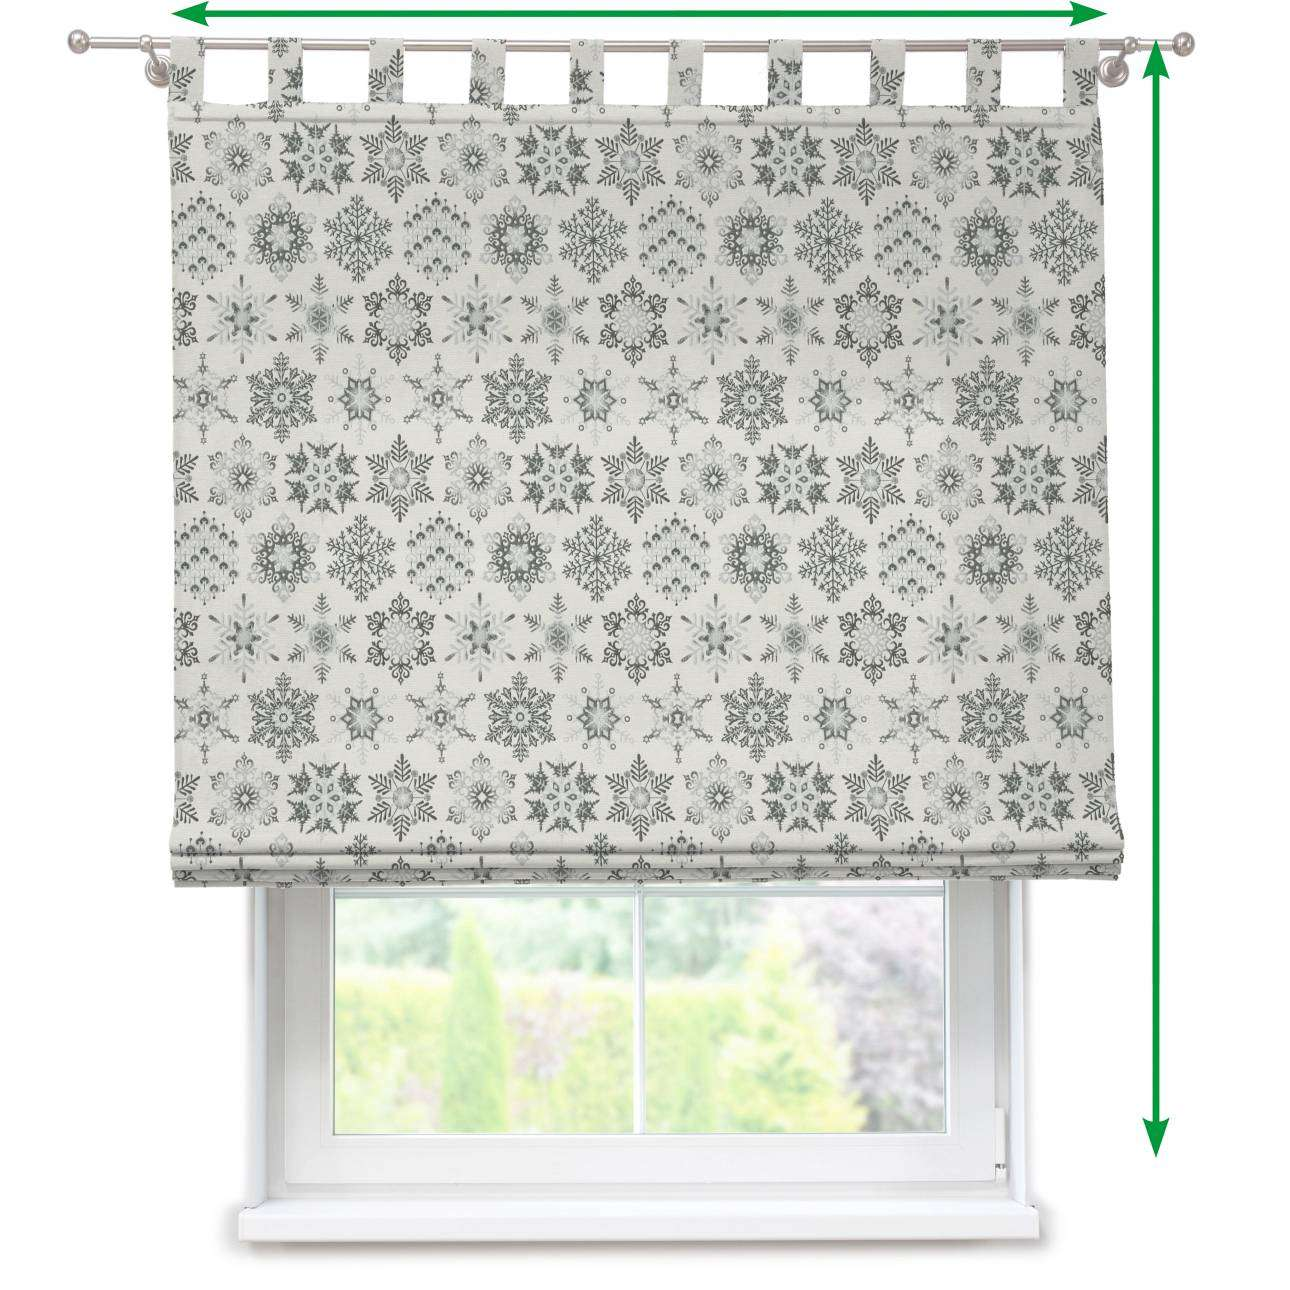 Verona tab top roman blind in collection Christmas , fabric: 630-29